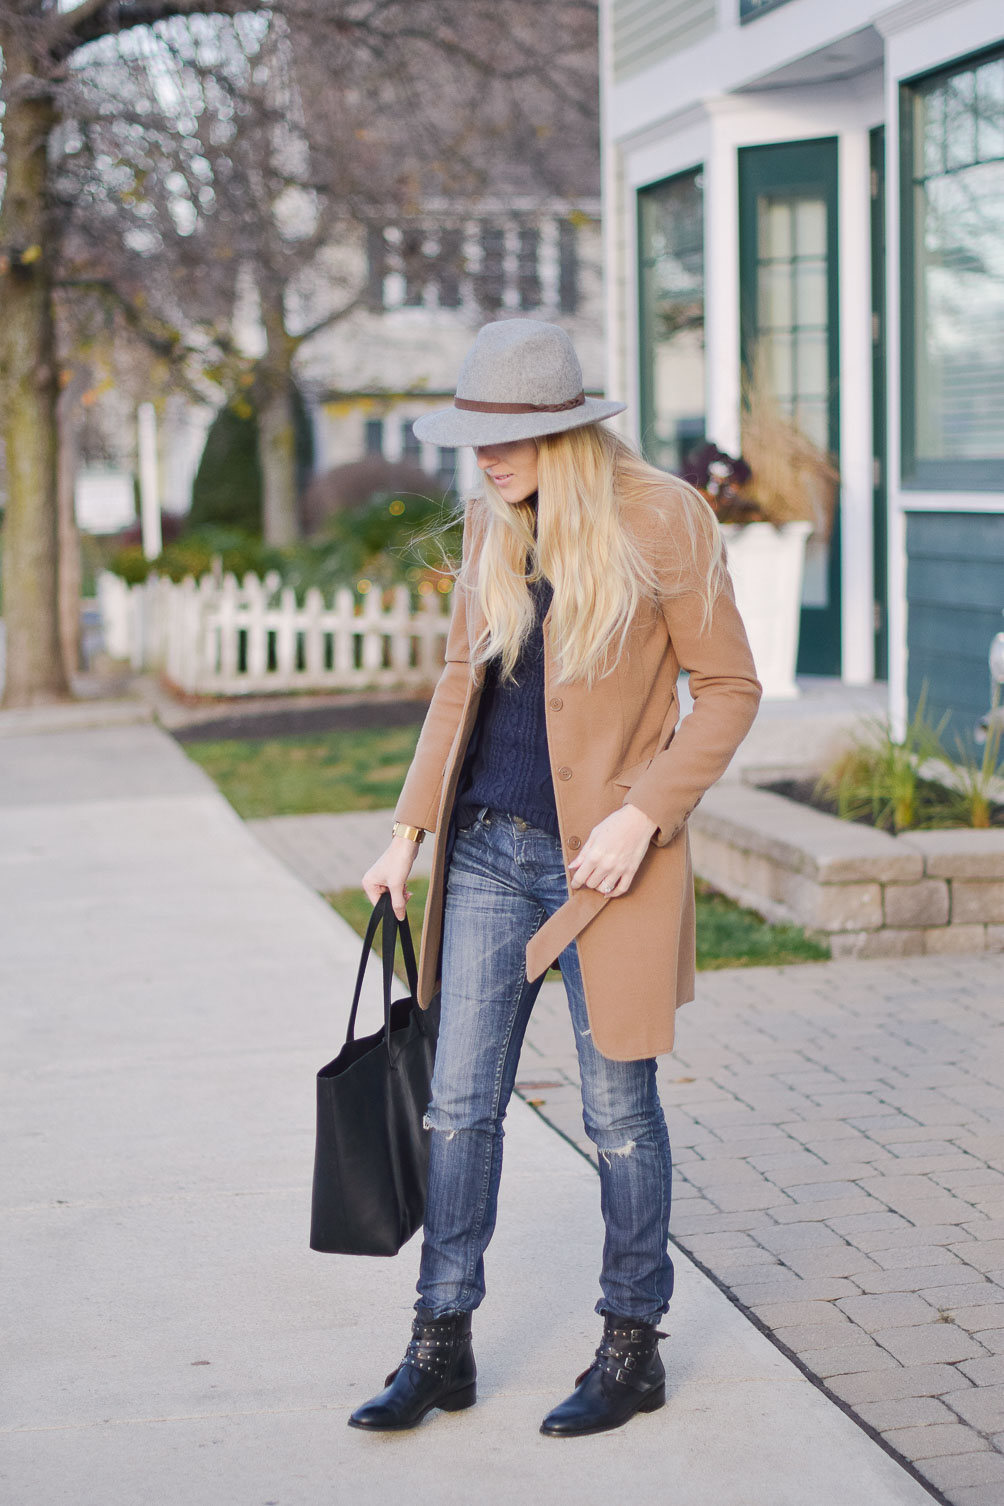 styling a camel winter coat with distressed jeans and cable knit sweater